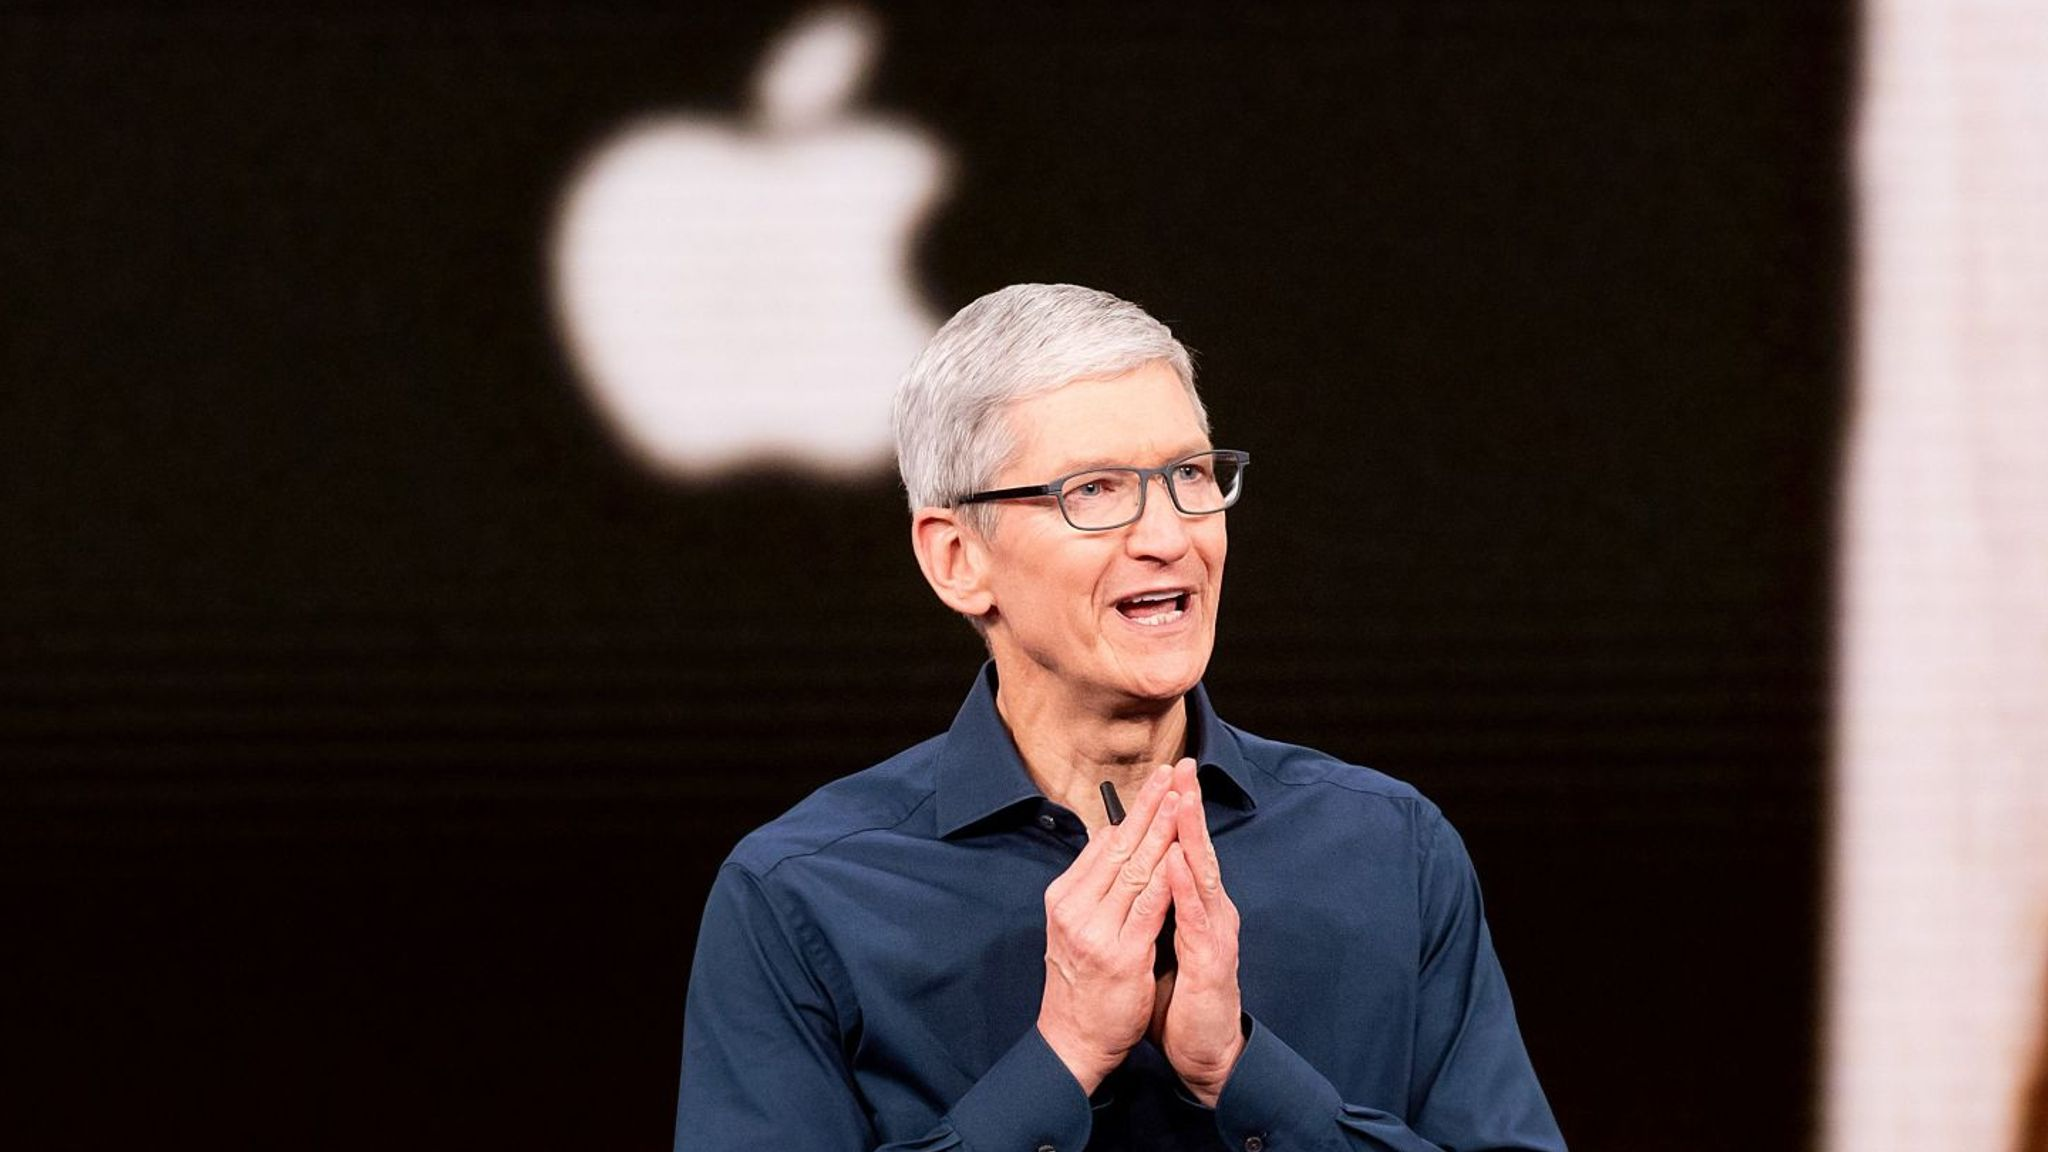 apple ceo impressed by remote work sees permanent changes report